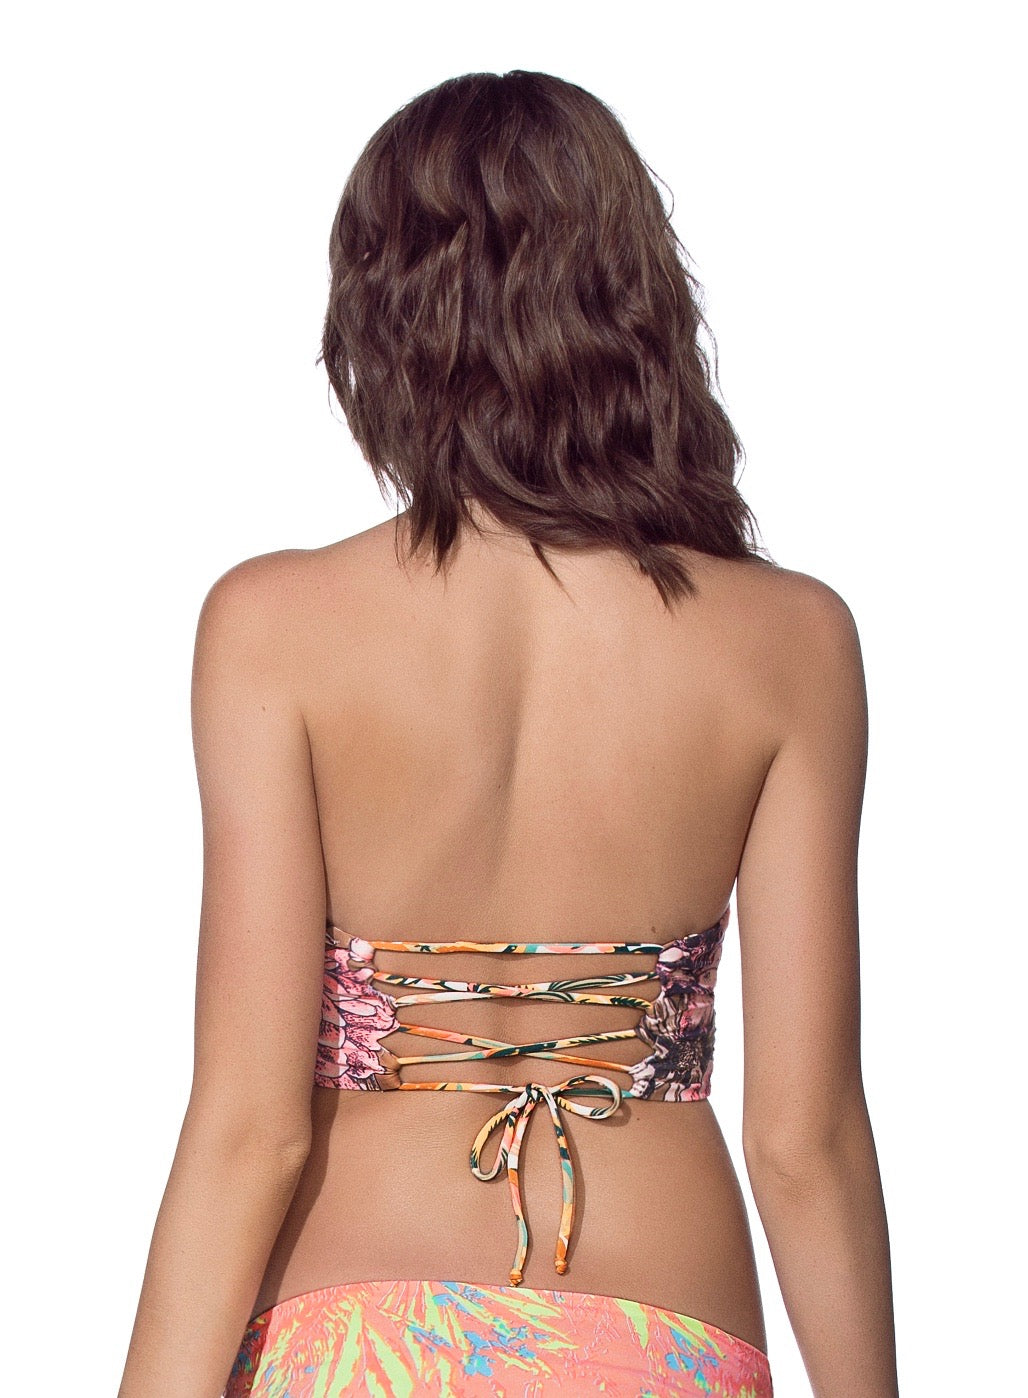 Women - Apparel - Swimwear - Bikinis Separates:Maaji:Batik Dancer Bustier Bikini Top:WKND threads